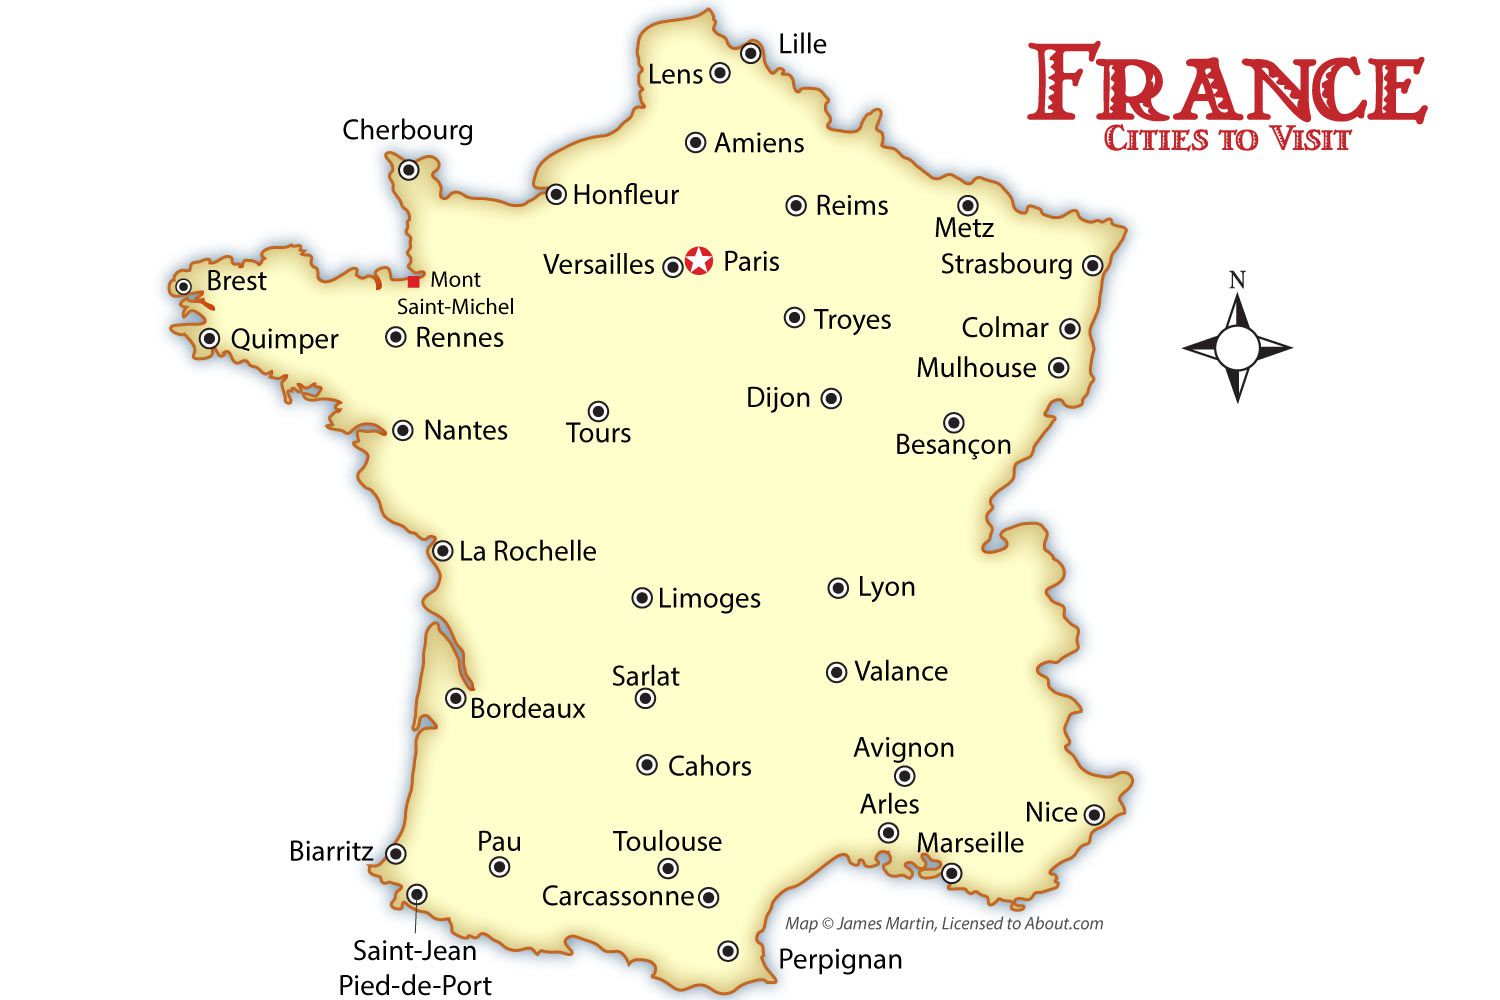 France Cities Map And Travel Guide - Map of texas showing cities